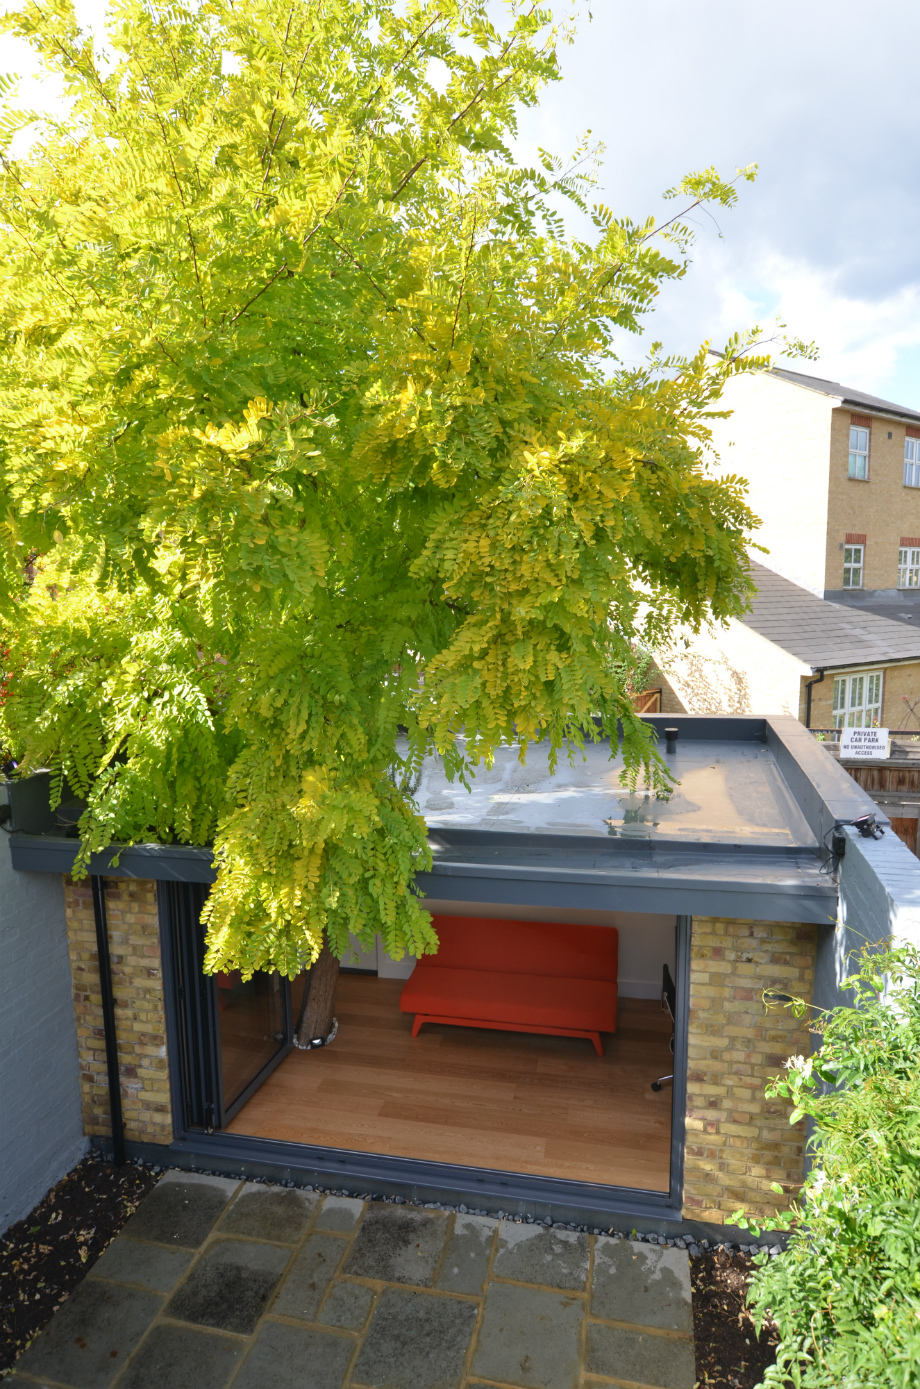 Branching out | Roofing Cladding & Insulation Magazine (RCI)